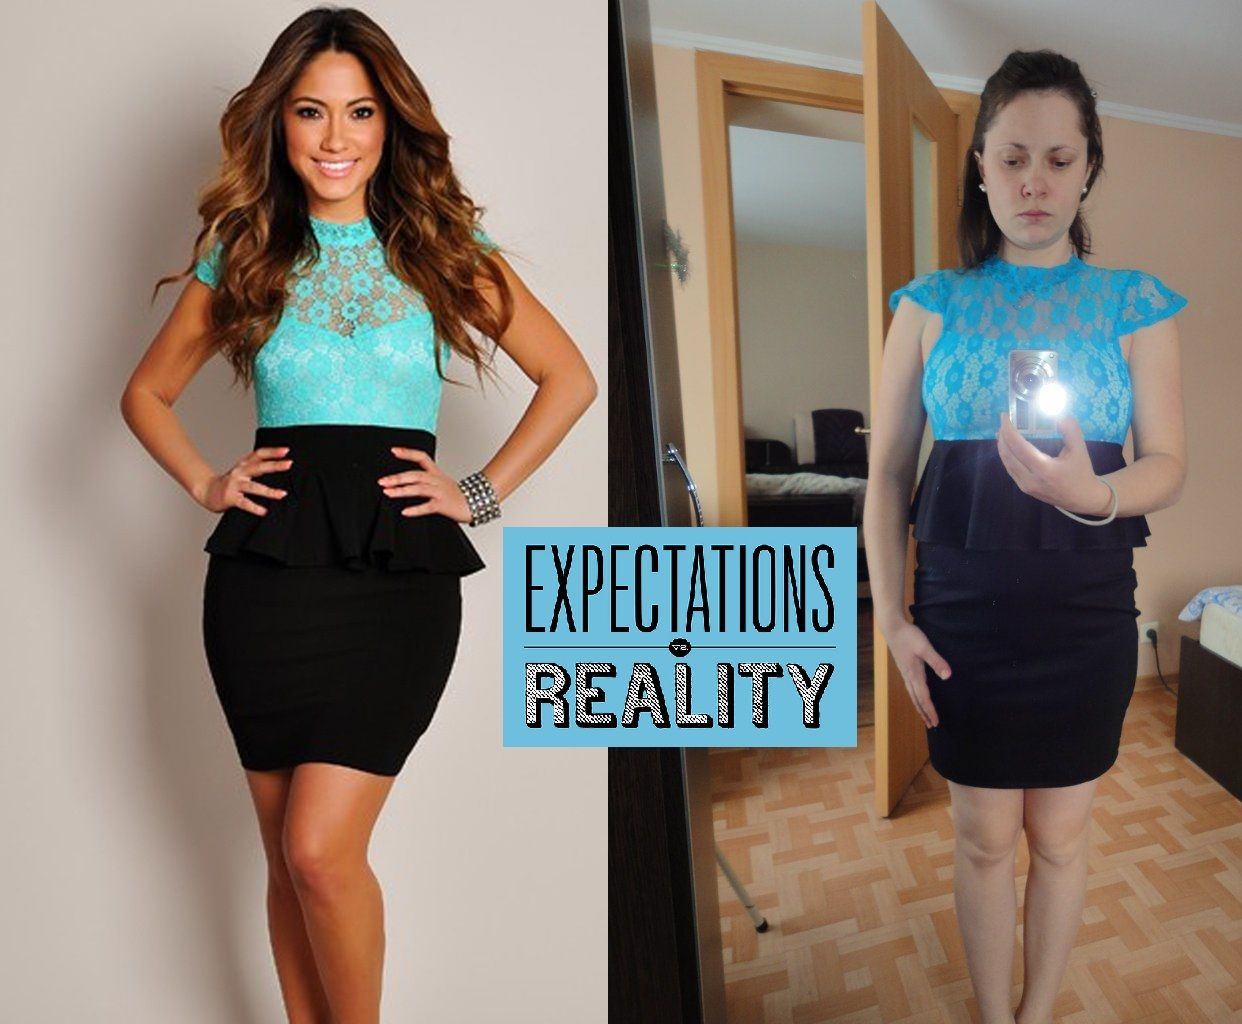 Aliexpress: expectation and reality (photo)